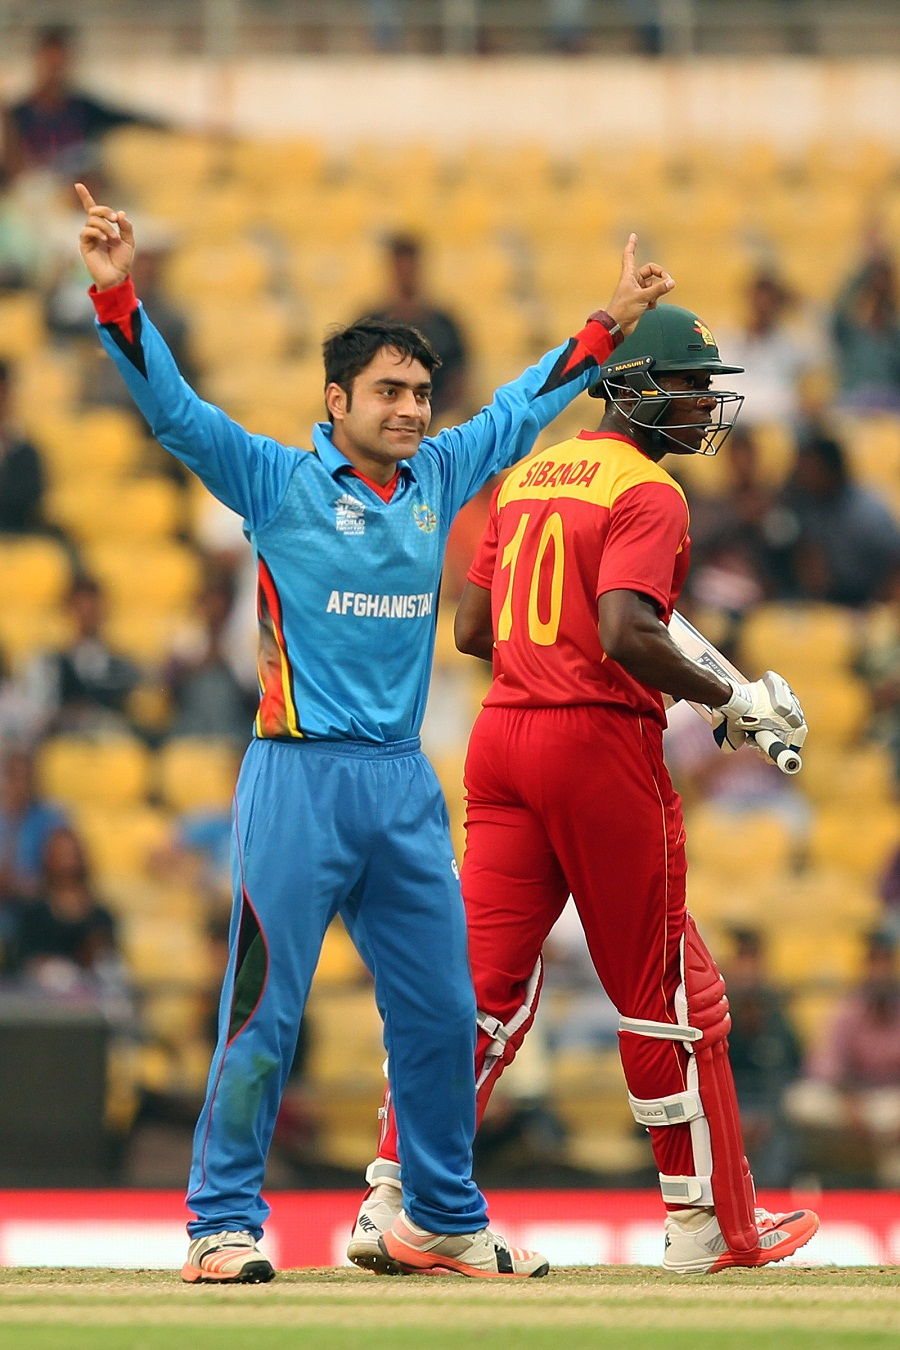 Afghanistan to Host Zimbabwe in Sharjah for Limited-Overs Series 3